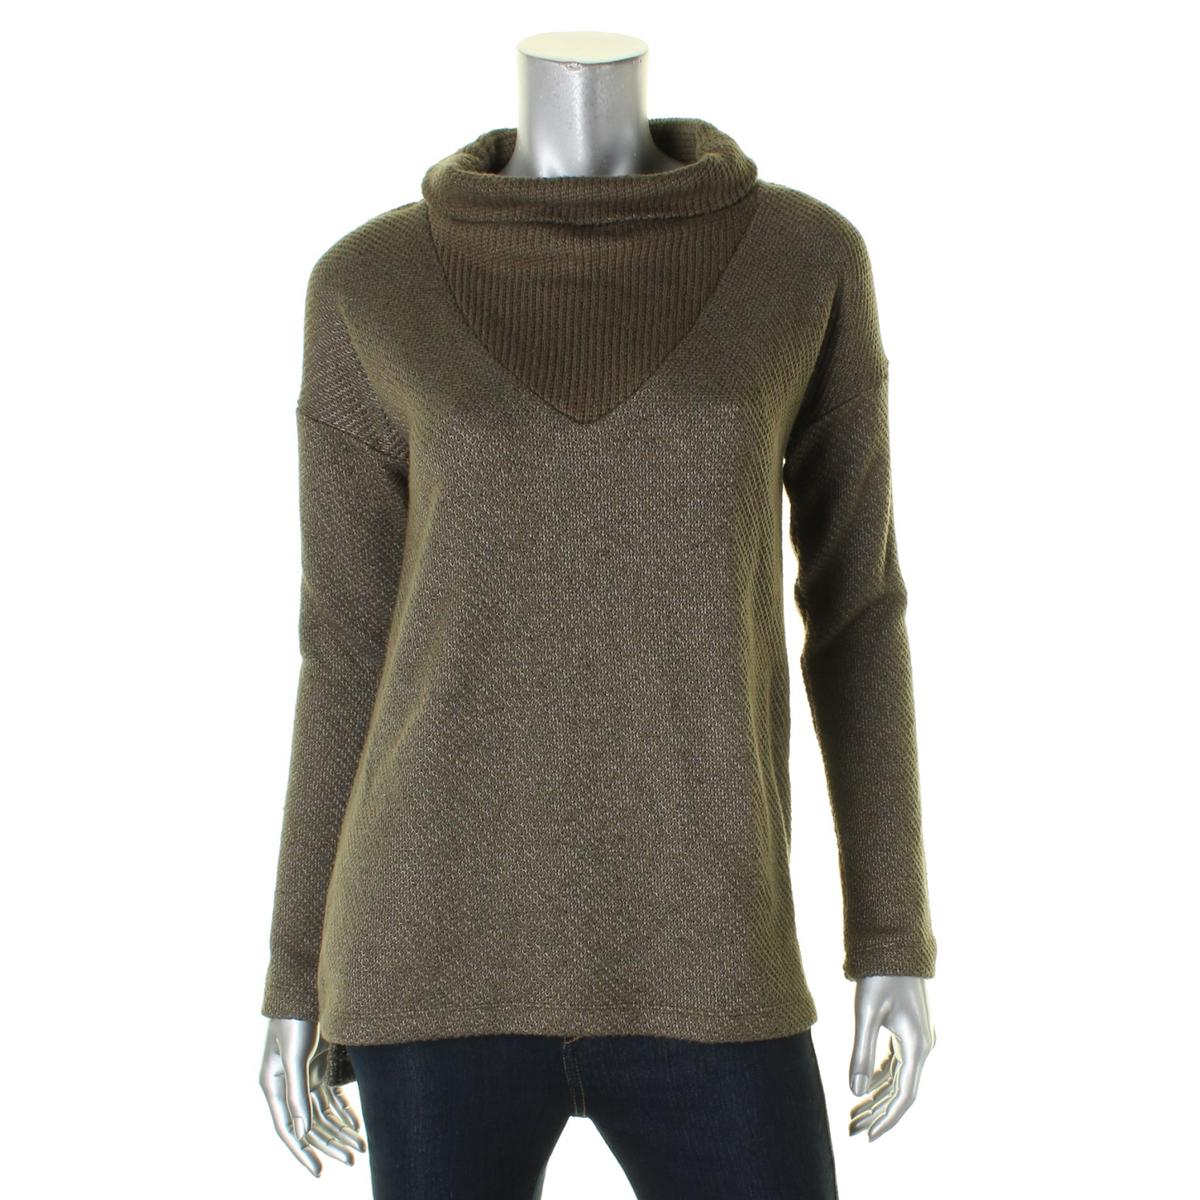 Sanctuary-Womens-Dunaway-Two-Tone-Long-Sleeves-Pullover-Sweater-Top-BHFO-9575 thumbnail 4